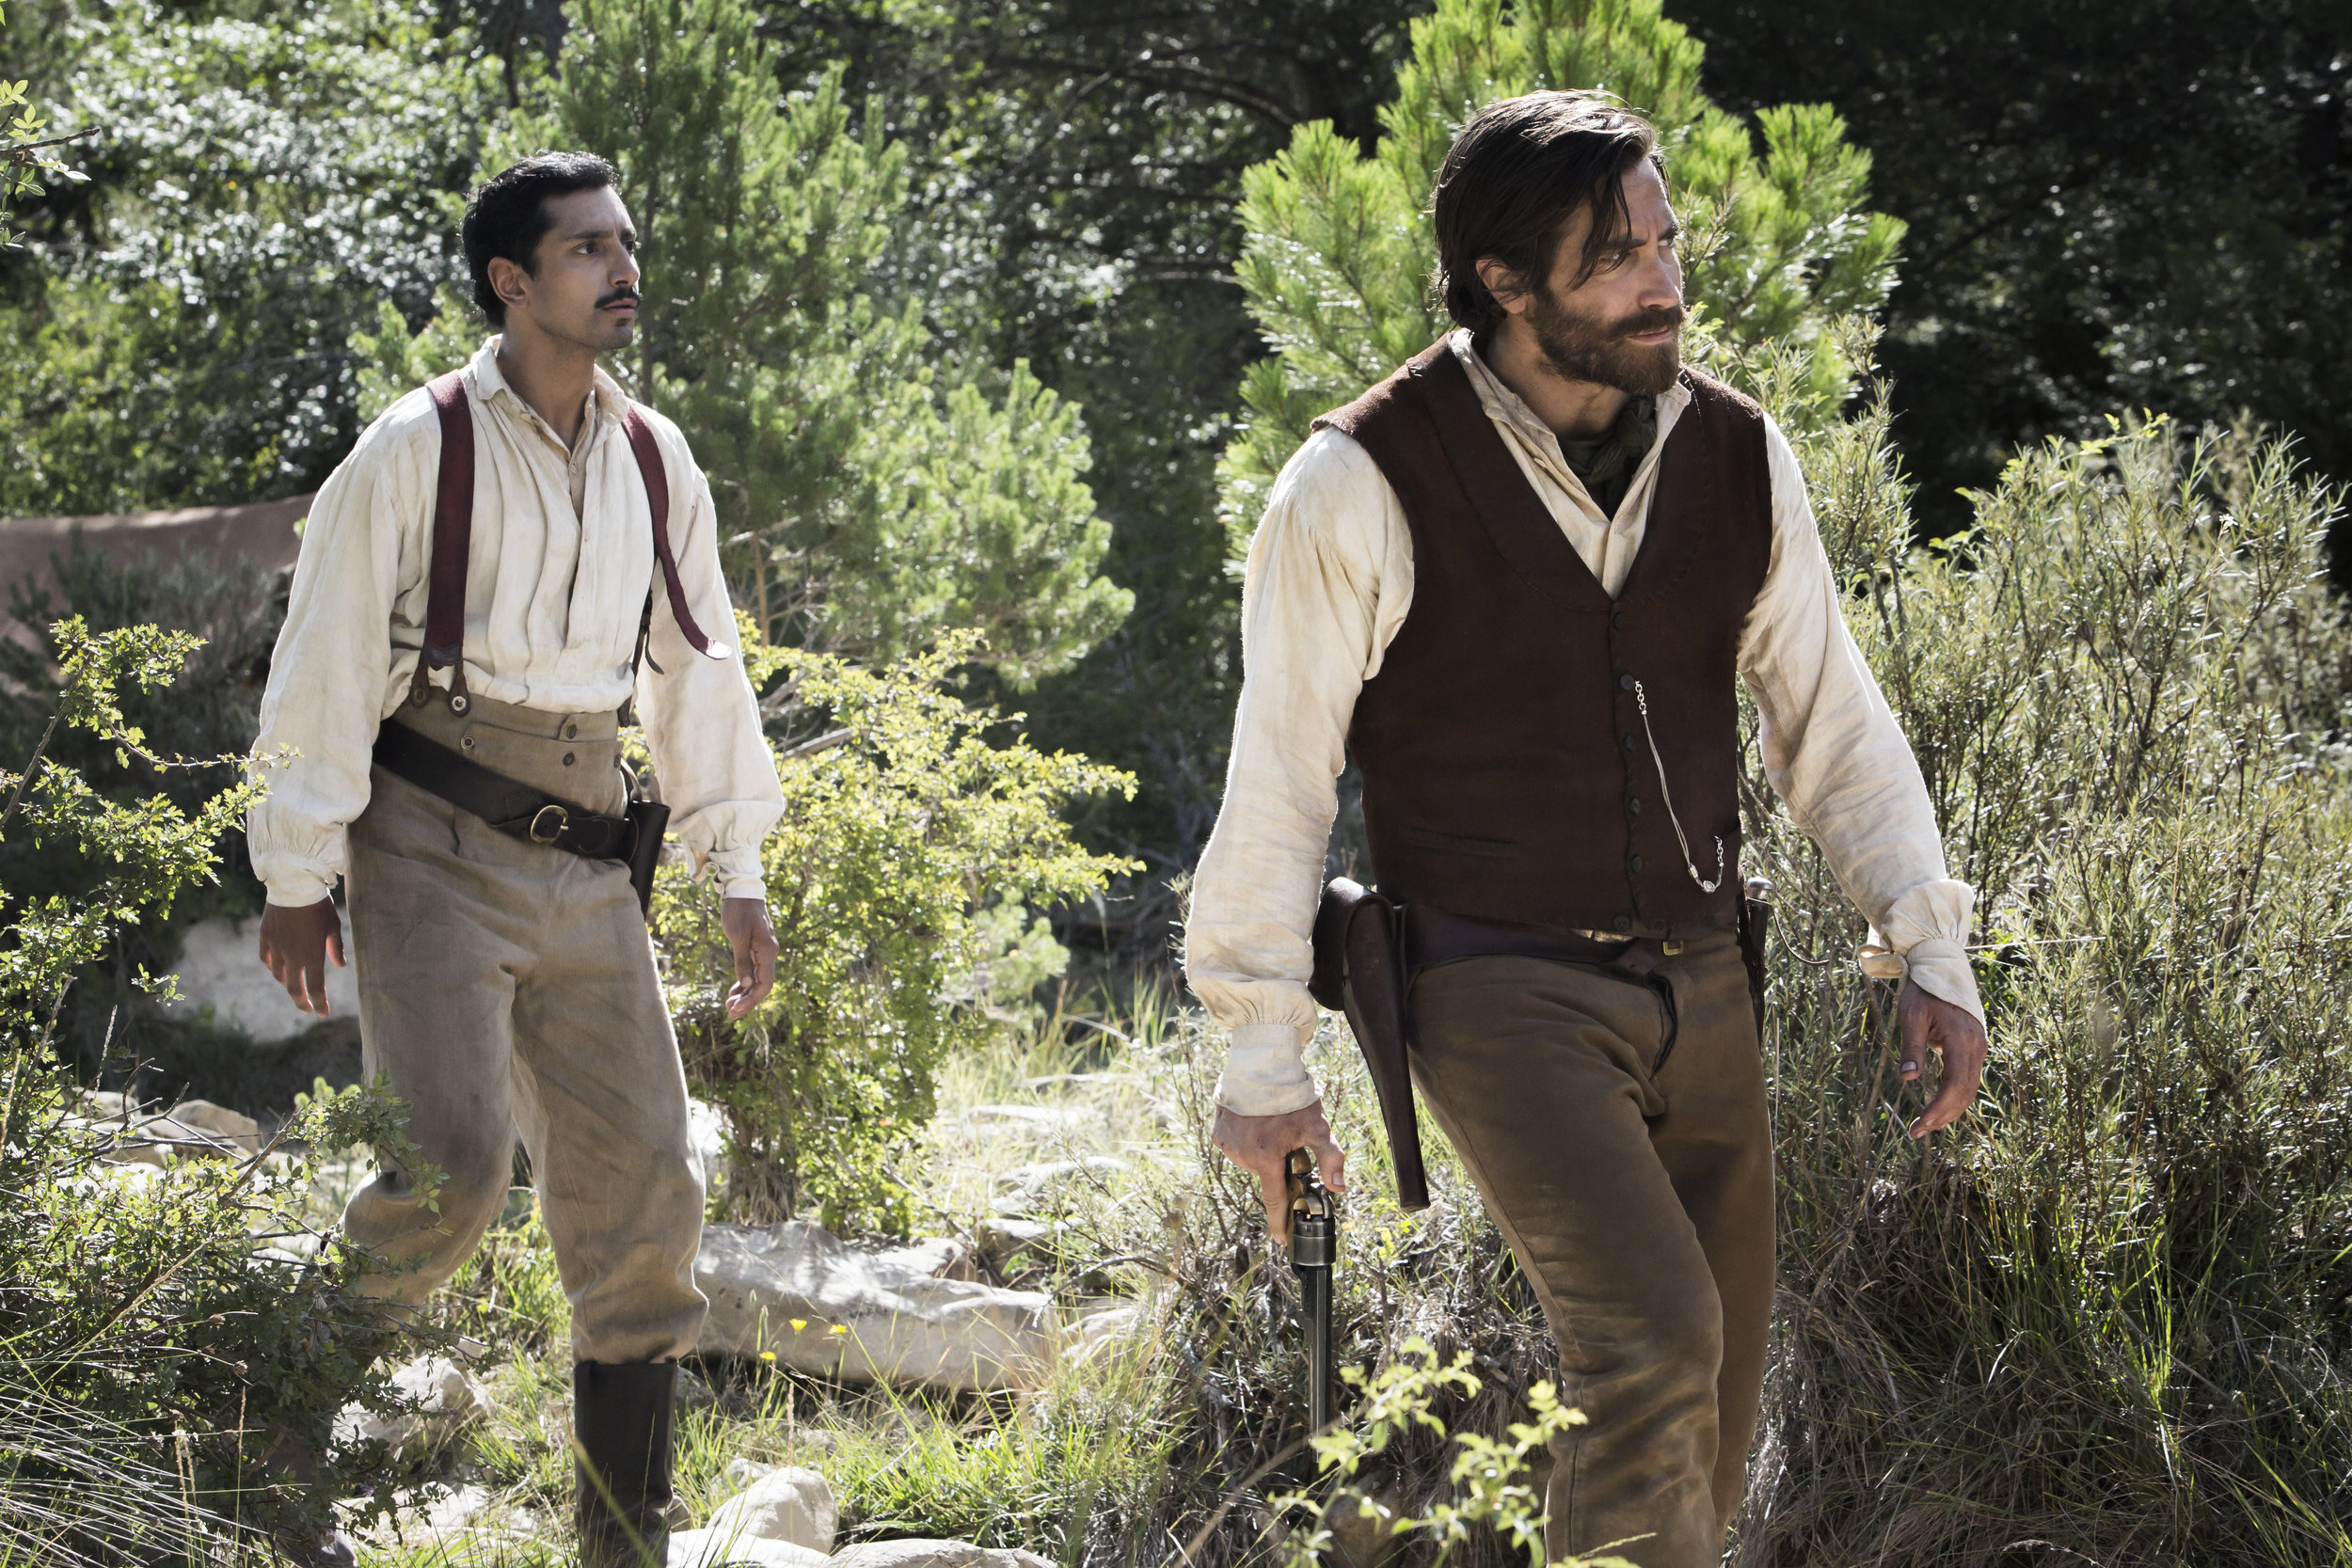 Jake Gyllenhaal and Joaquin Phoenix in The Sisters Brothers